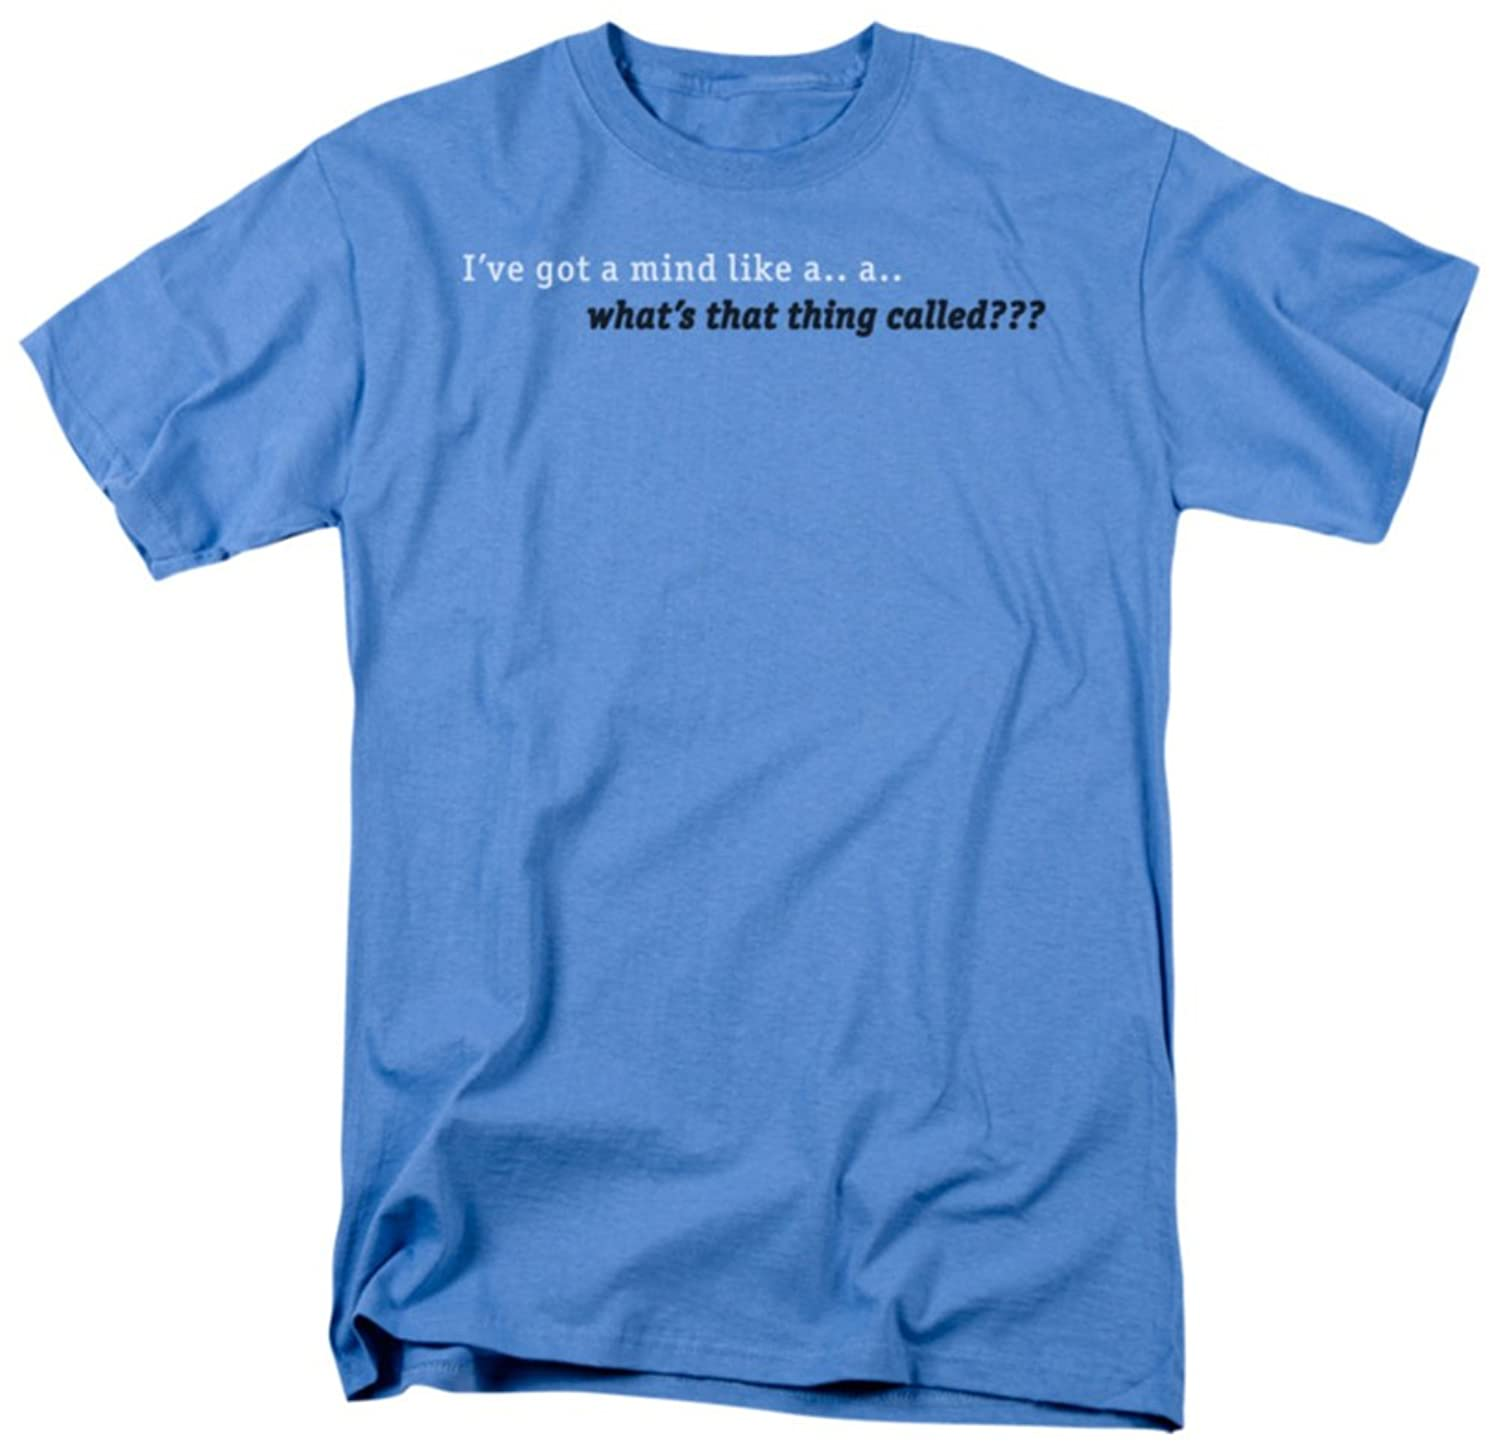 I've Got A Mind Like A...A...What's That Thing Called? Funny Saying Adult T-Shirt